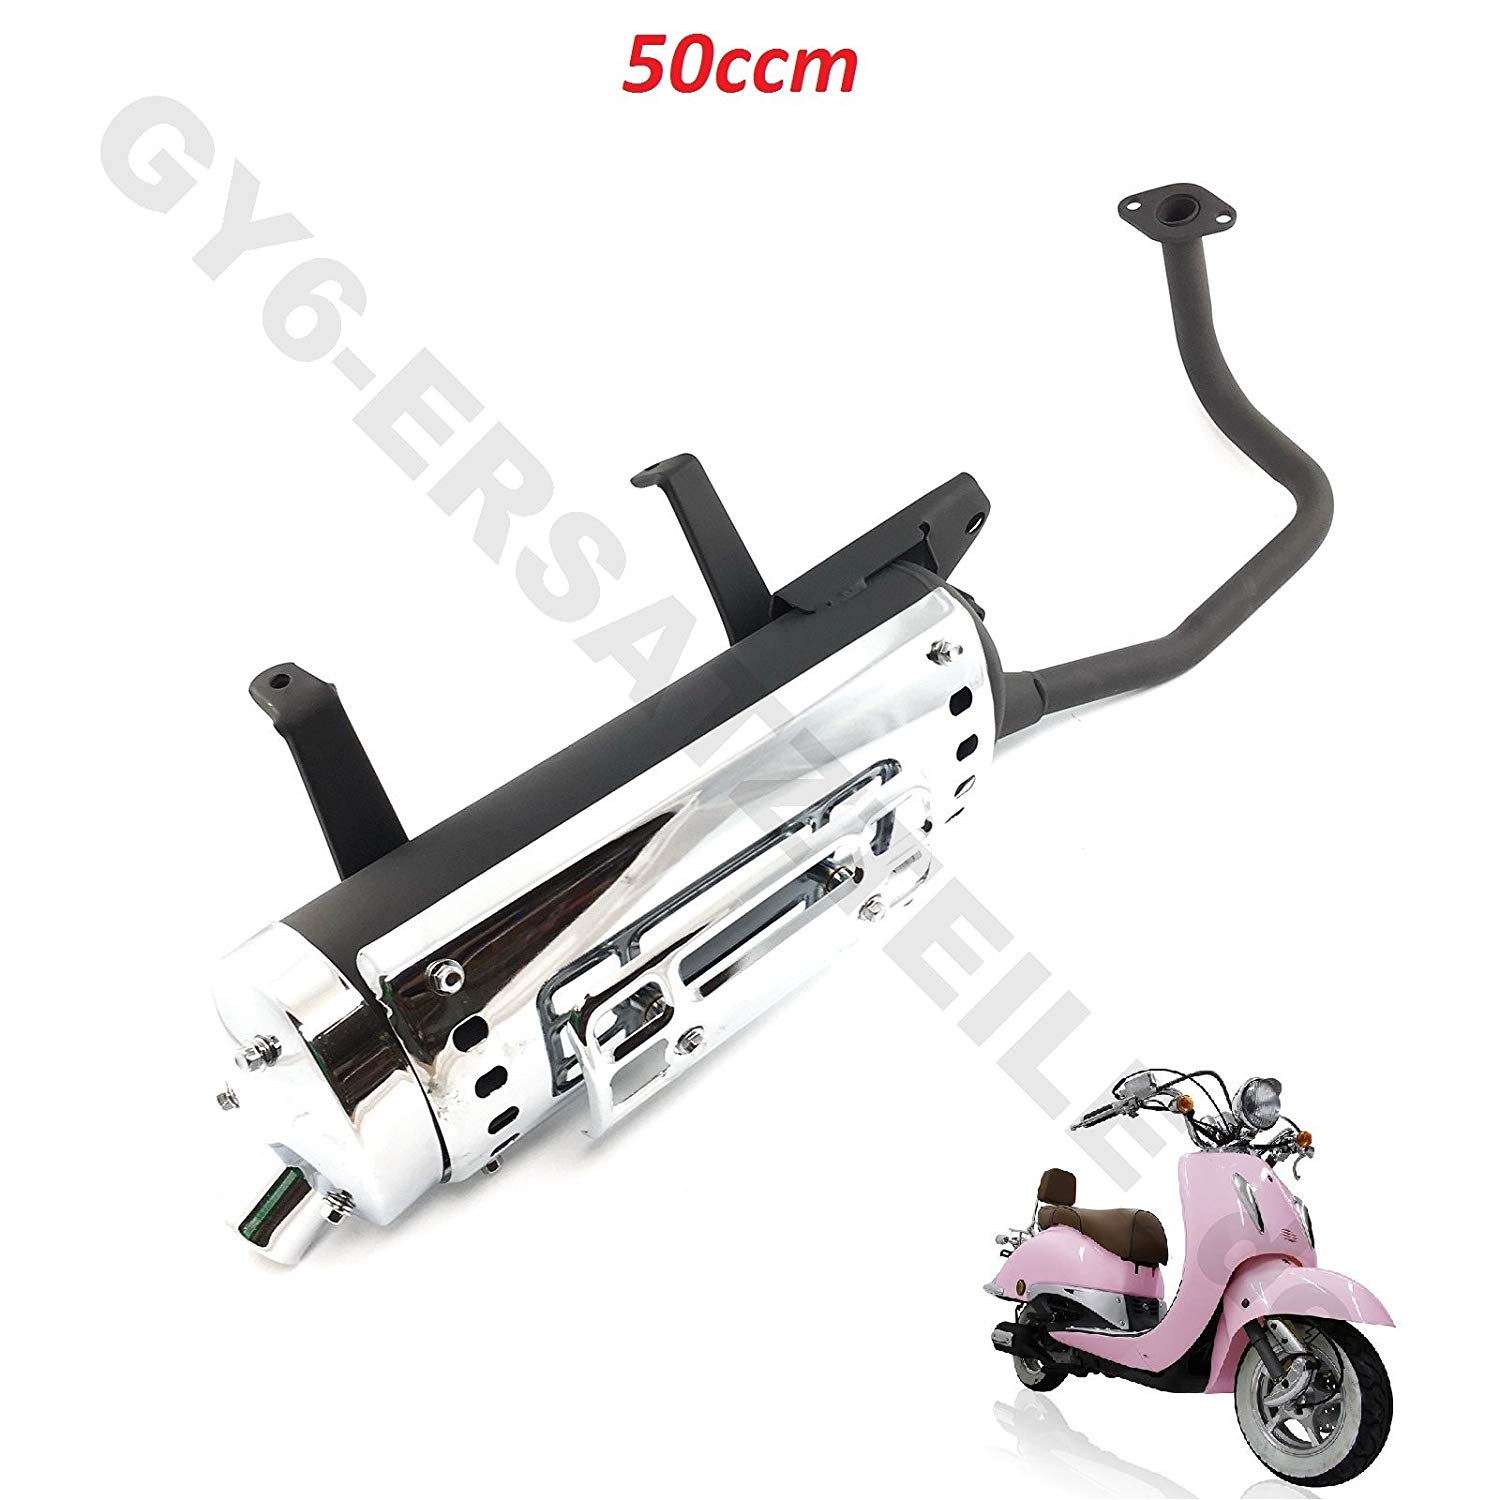 Cheap Scooter Parts China Keeway, find Scooter Parts China